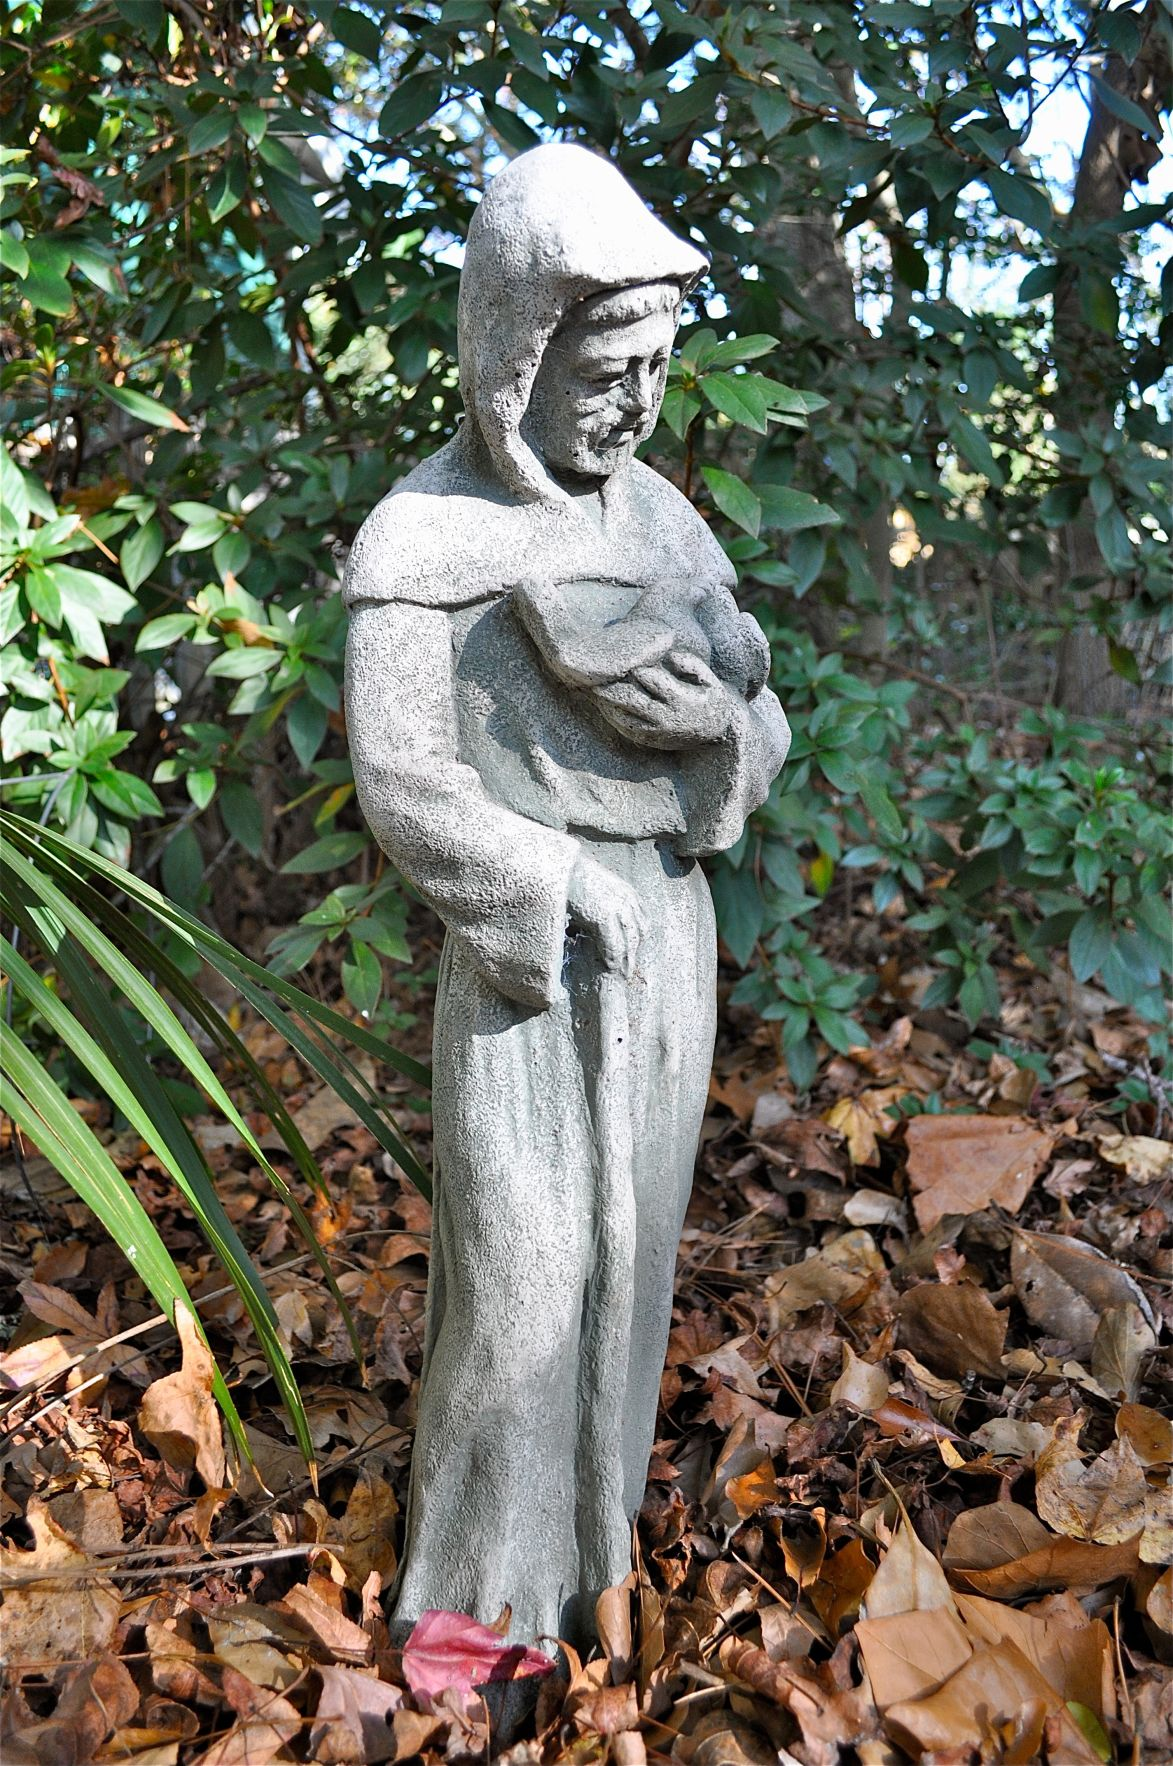 From St Francis To Bigfoot Statuary Gives Homeowners Another Way To Express Themselves Features Postandcourier Com